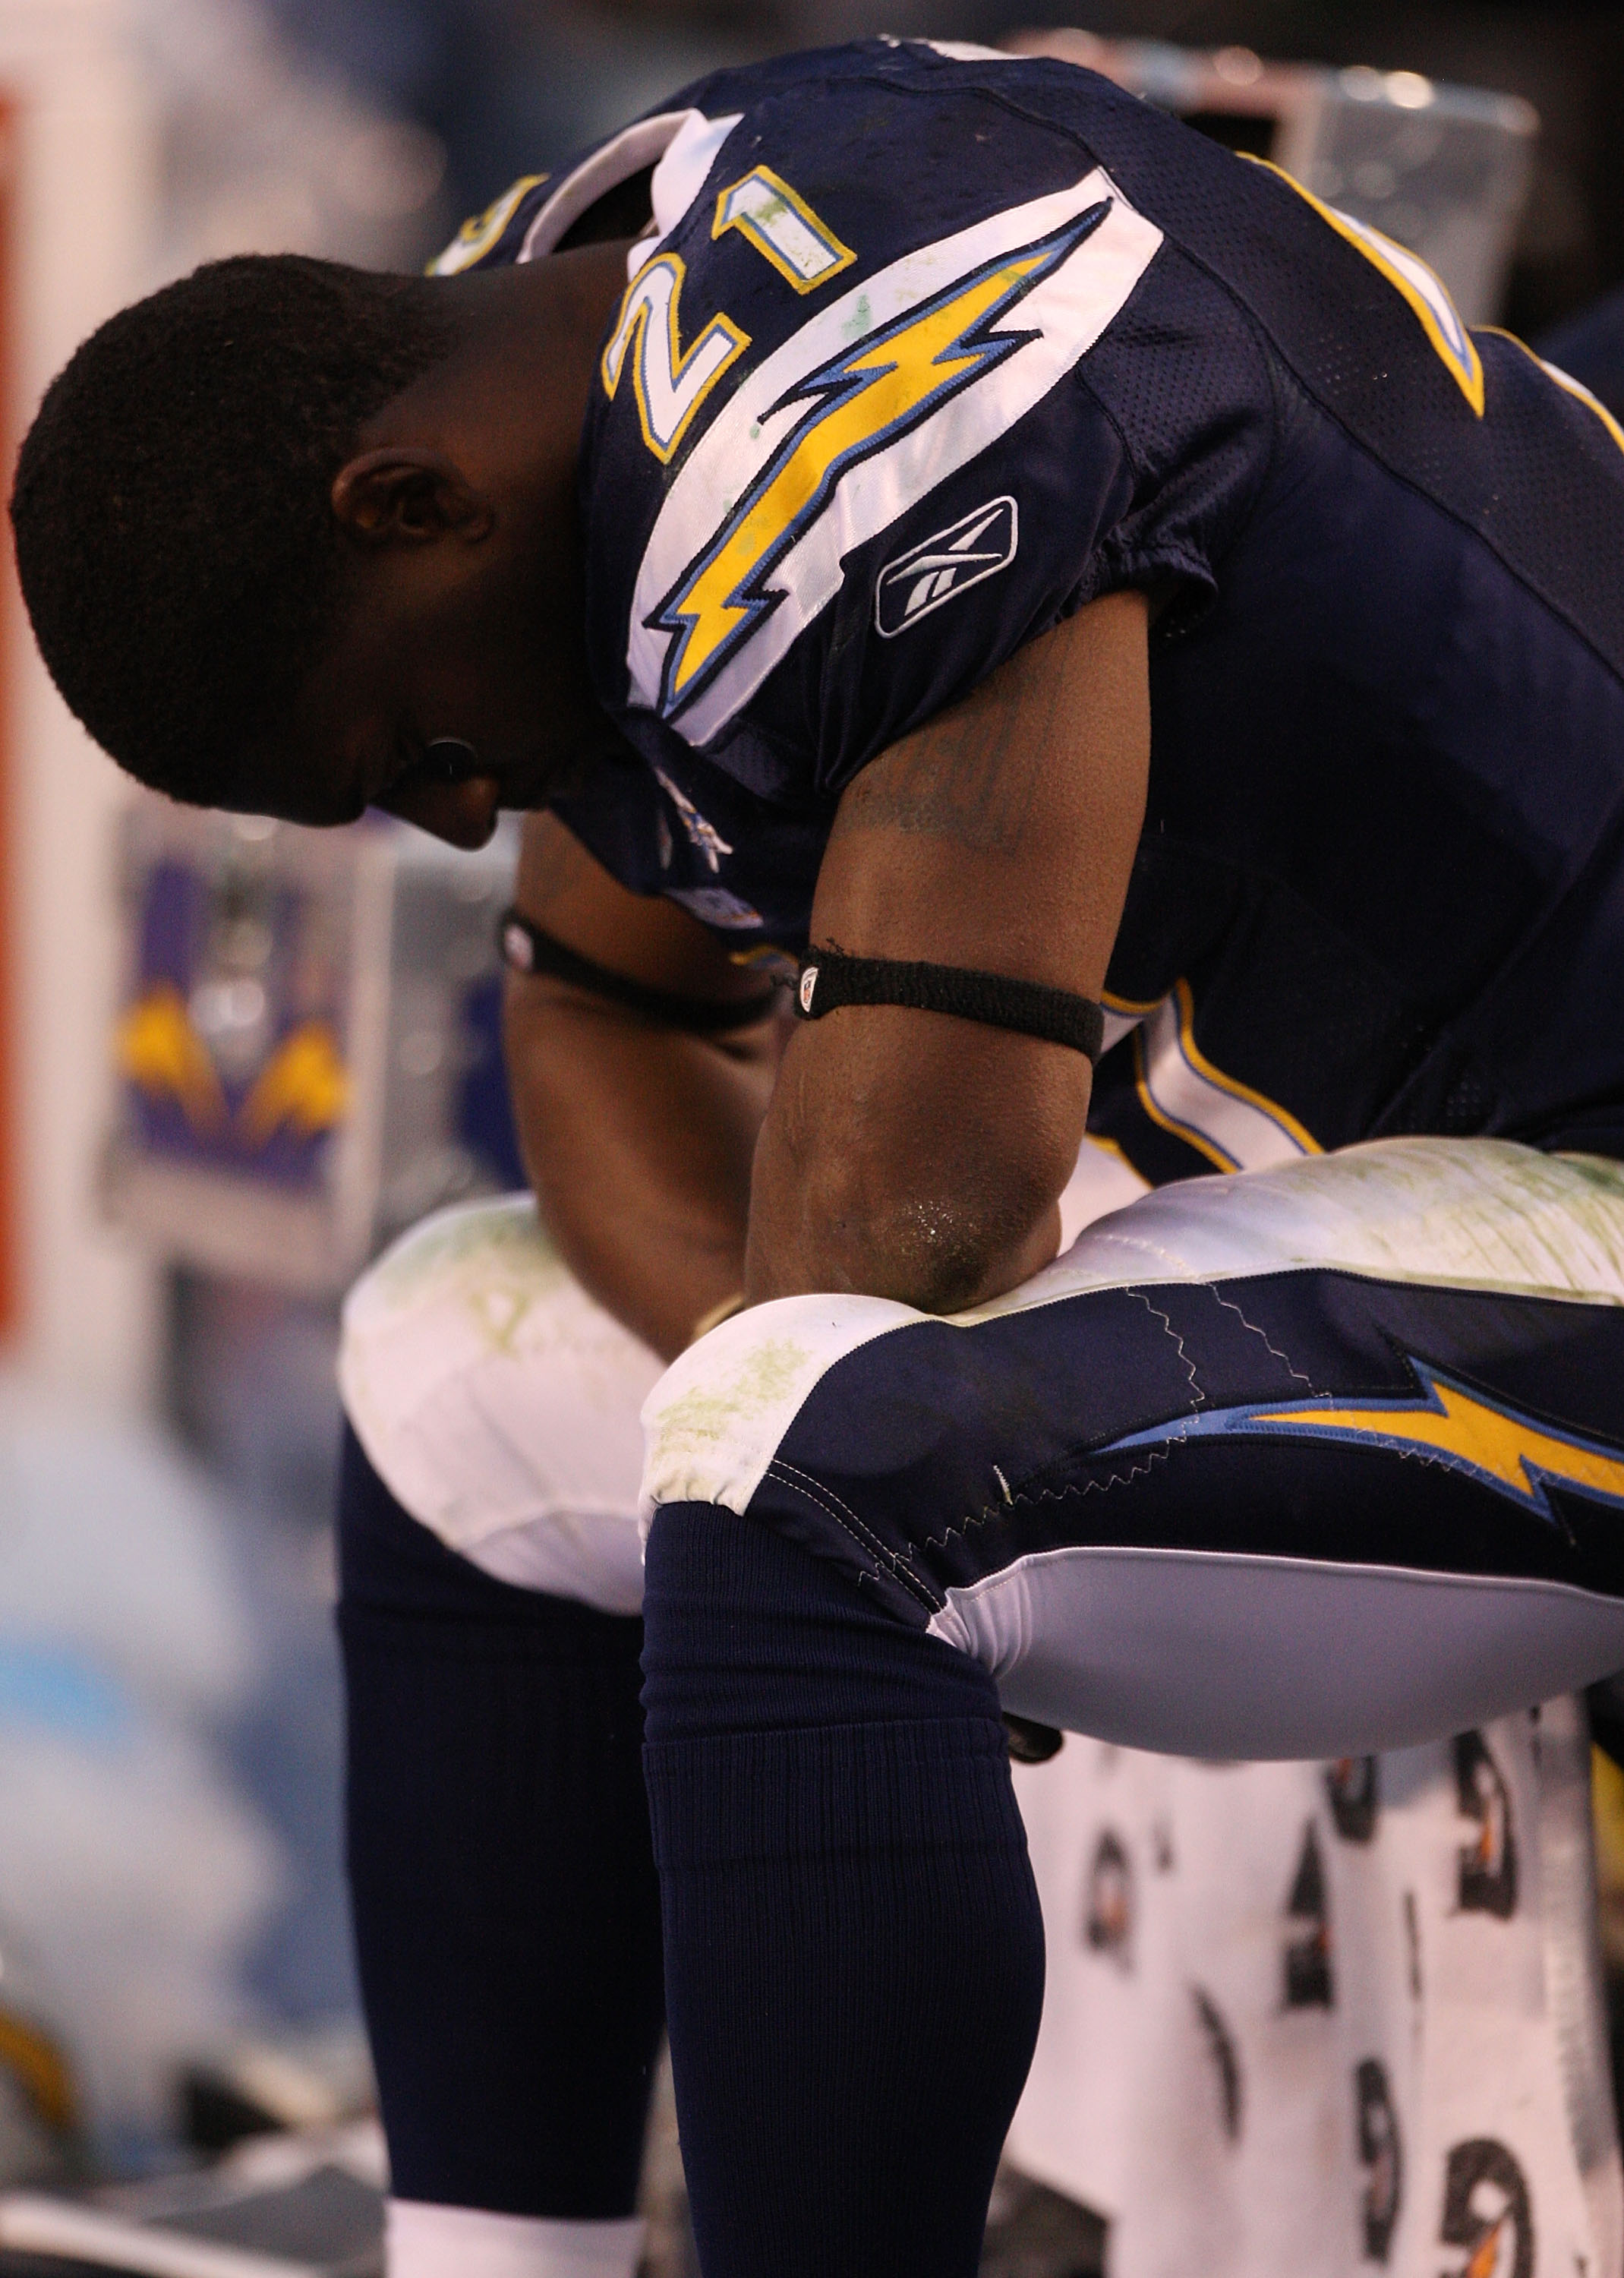 SAN DIEGO - JANUARY 17:  Running back LaDainian Tomlinson #21 of the San Diego Chargers sits on the bench in the final moments of the AFC Divisional Playoff Game against the New York Jets at Qualcomm Stadium on January 17, 2010 in San Diego, California. T